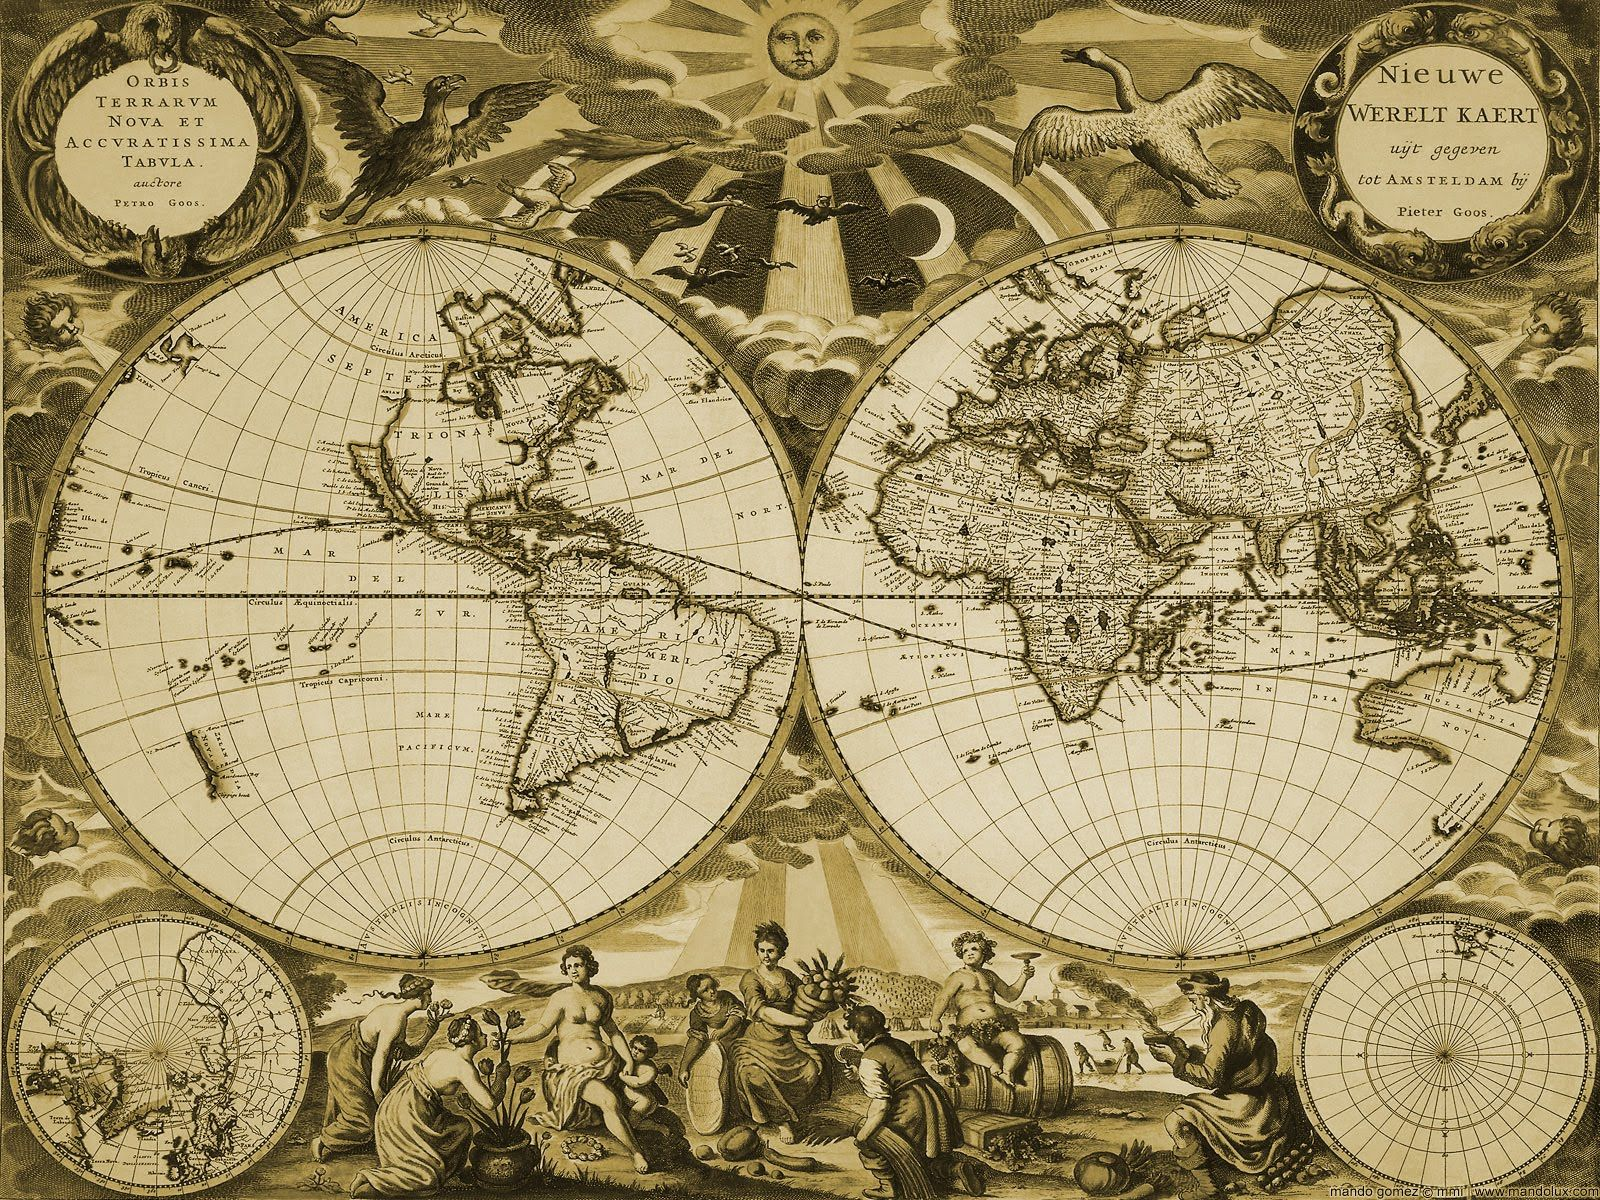 View source image worldly wallpaper pinterest book drawing old world map desktop wallpaper treasure map wallpapers wallpapers publicscrutiny Images